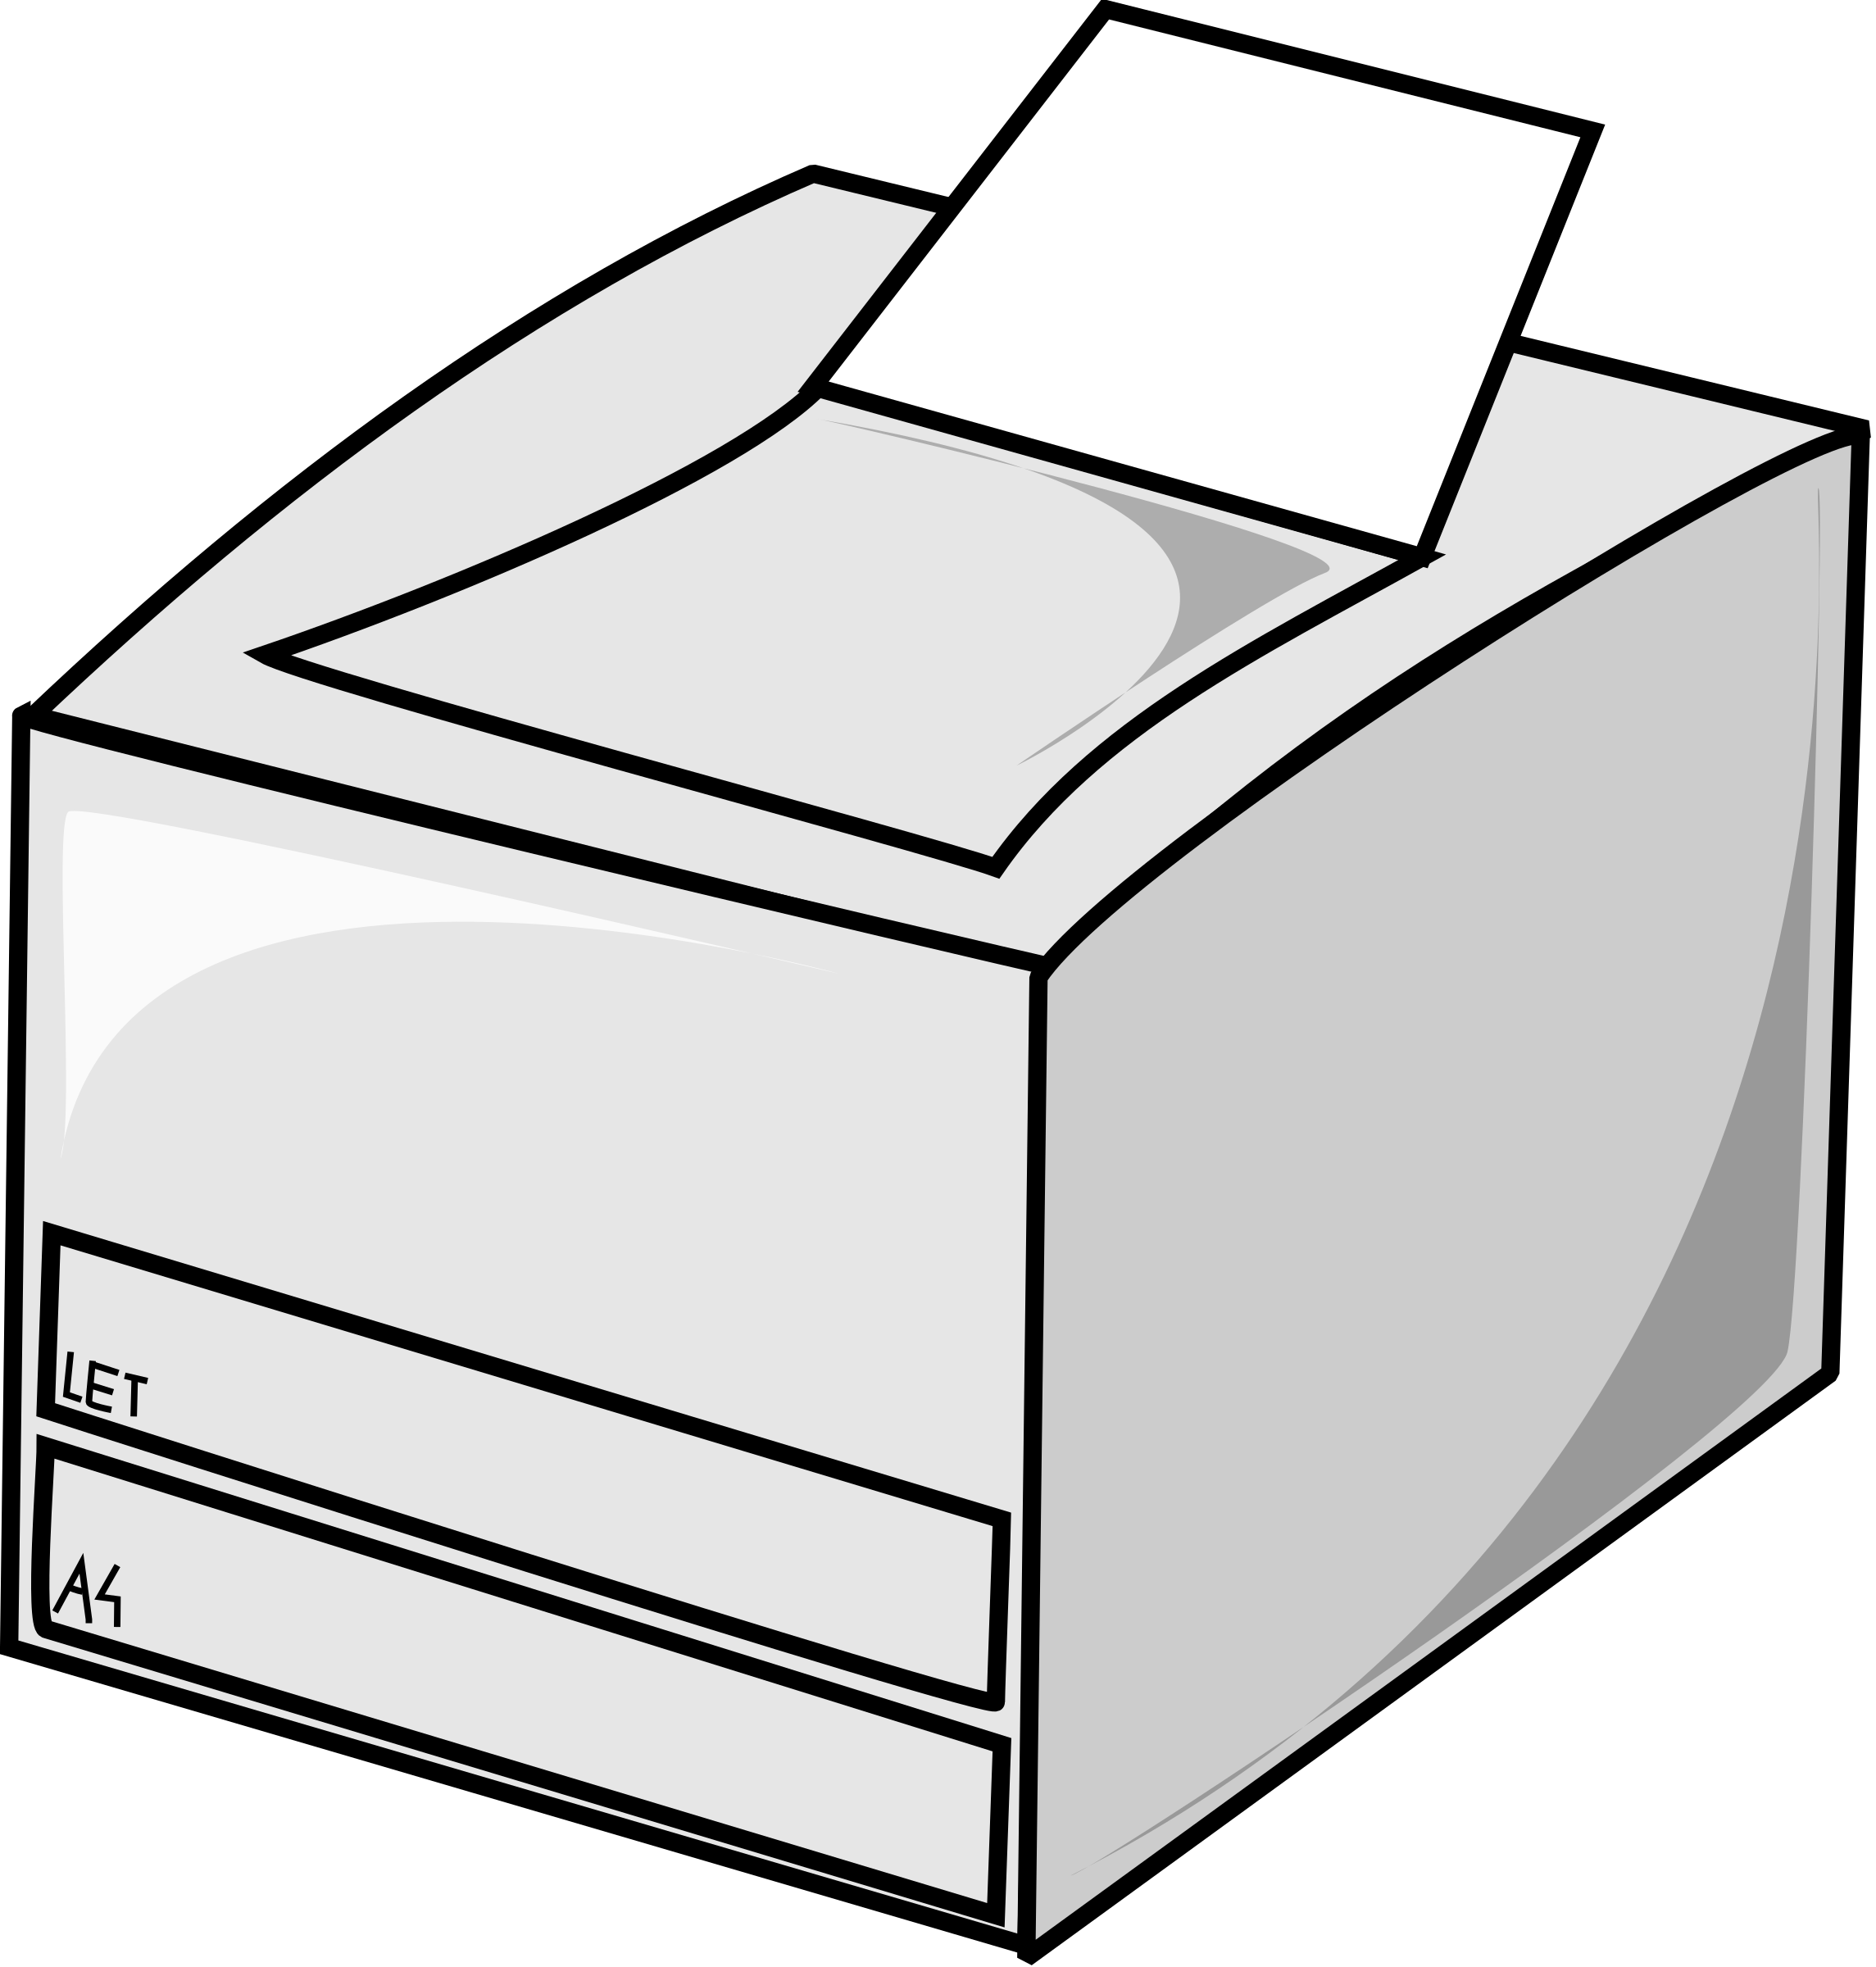 Laser printer by nicubunu